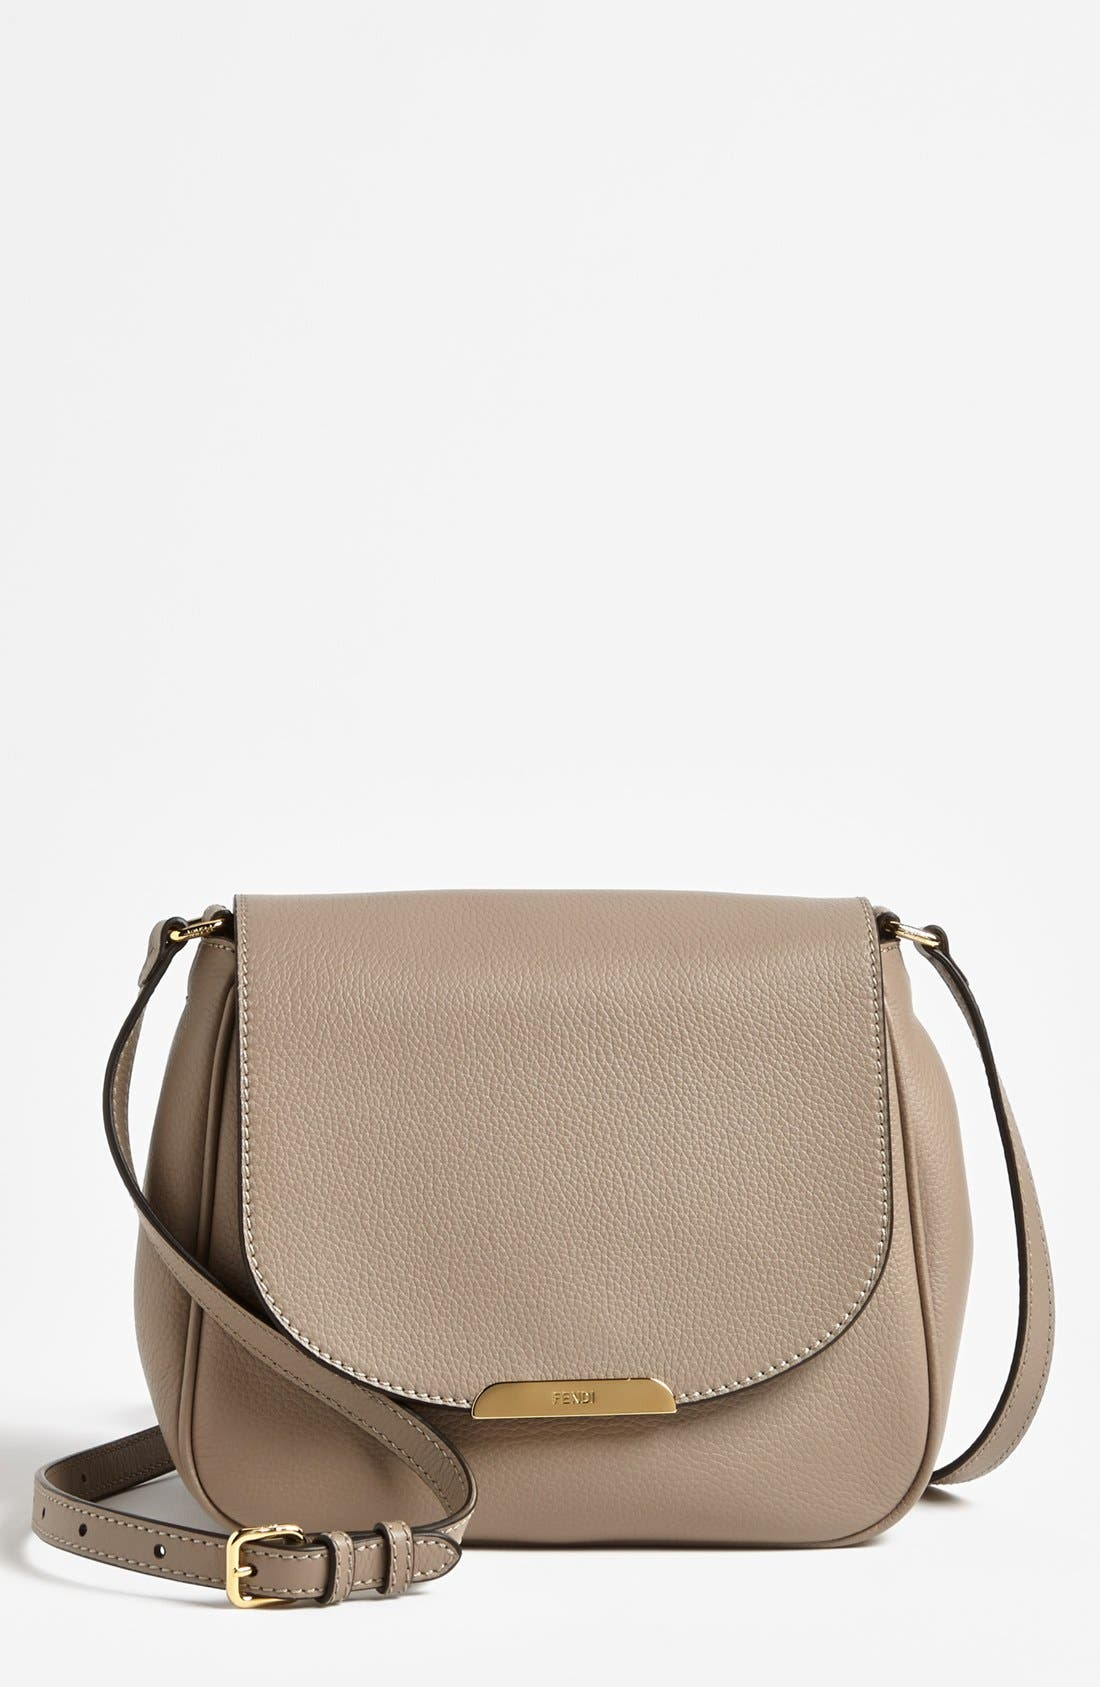 Main Image - Fendi Leather Crossbody Bag